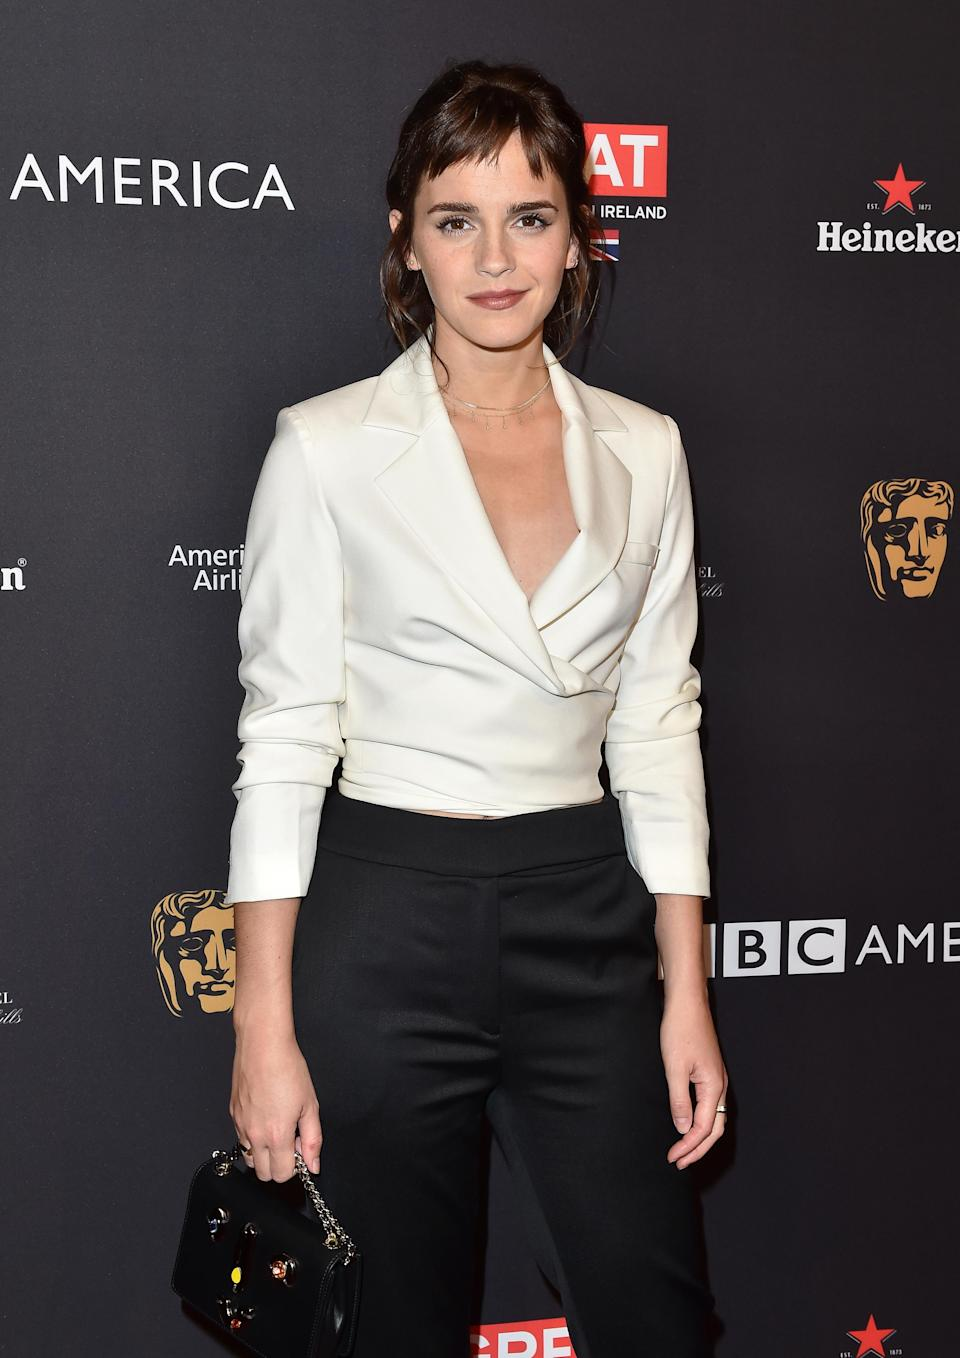 Actress Emma Watson arrives at The BAFTA Los Angeles Tea Party at the Four Seasons Hotel in Los Angeles, California in 2016. (Photo: Axelle/Bauer-Griffin/FilmMagic)